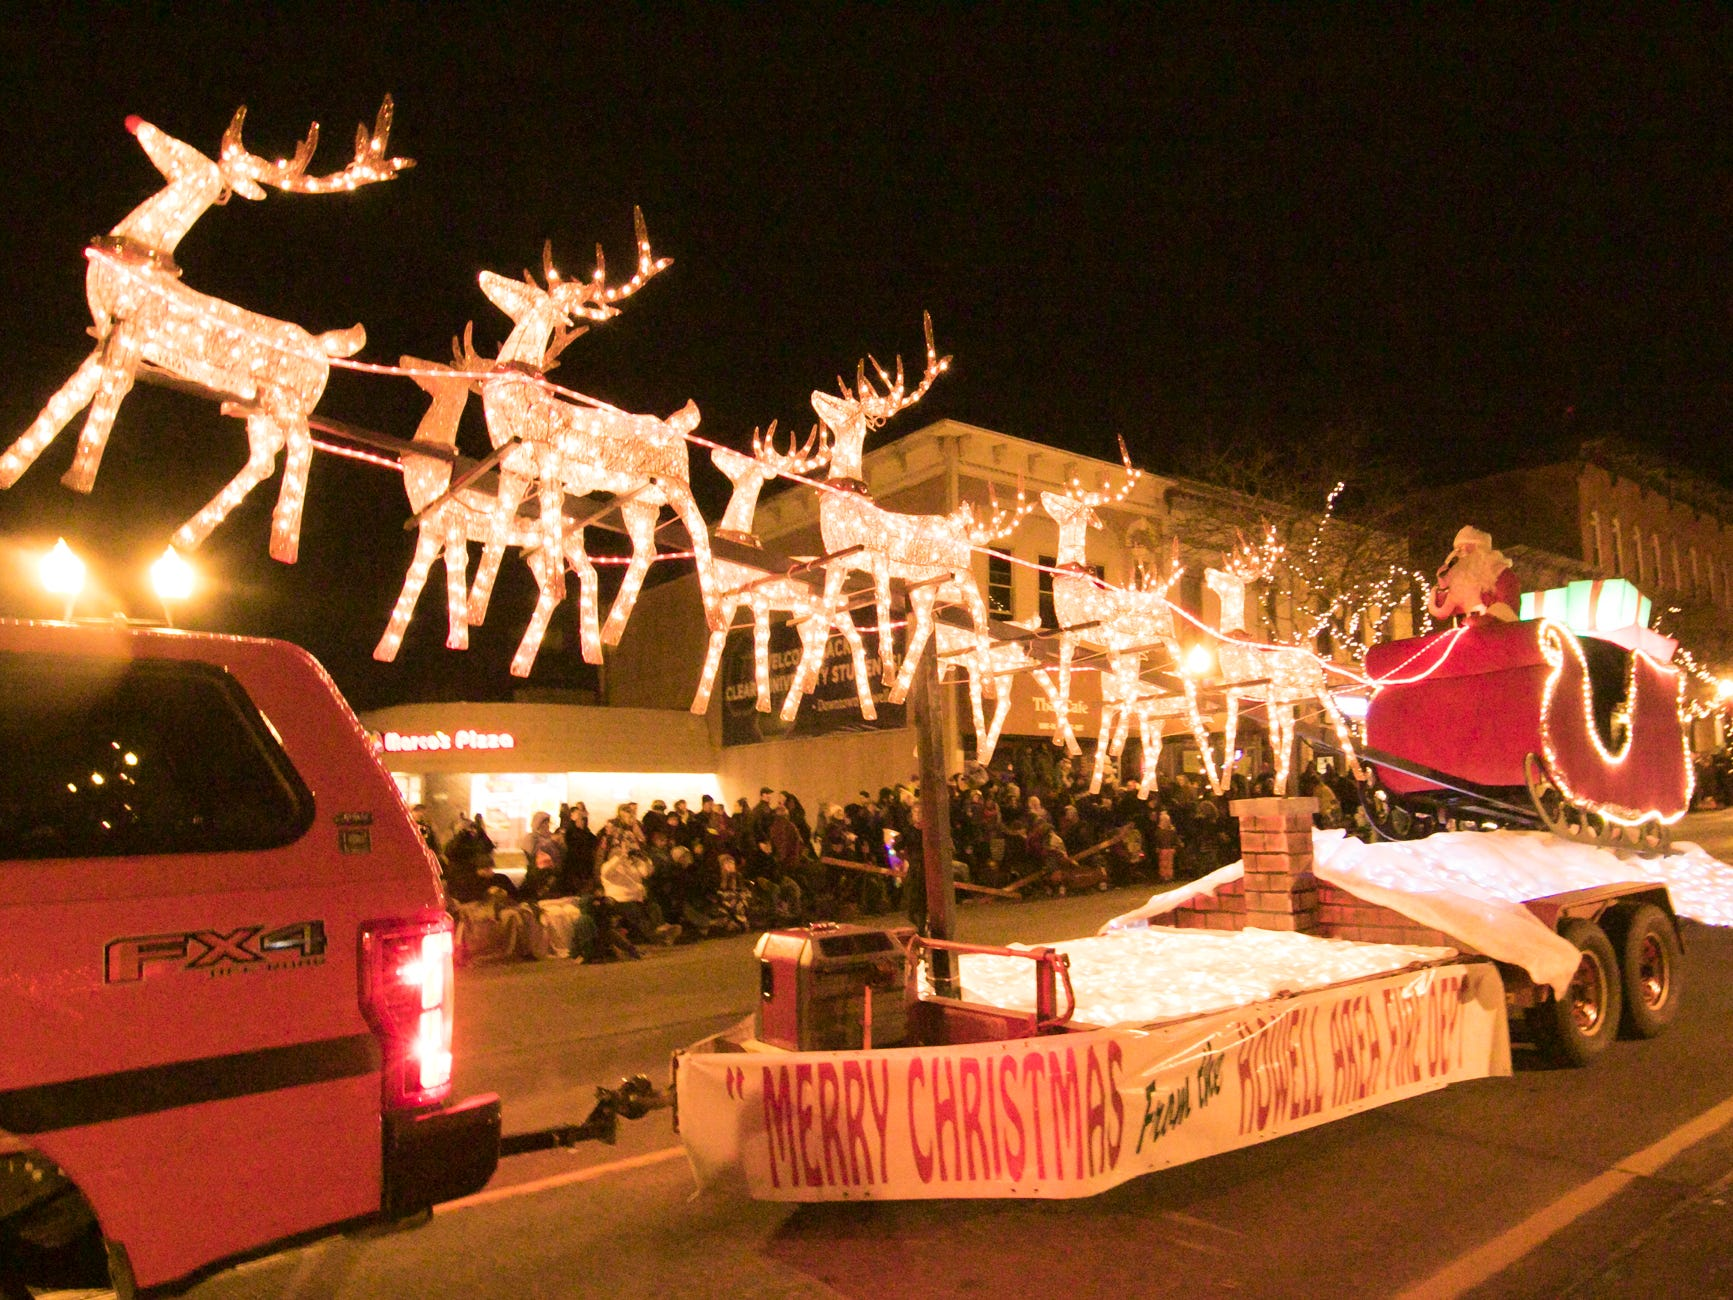 Santa arrives in a float provided by the Howell Area Fire Department in the Fantasy of Lights parade Friday, Nov. 23, 2018.